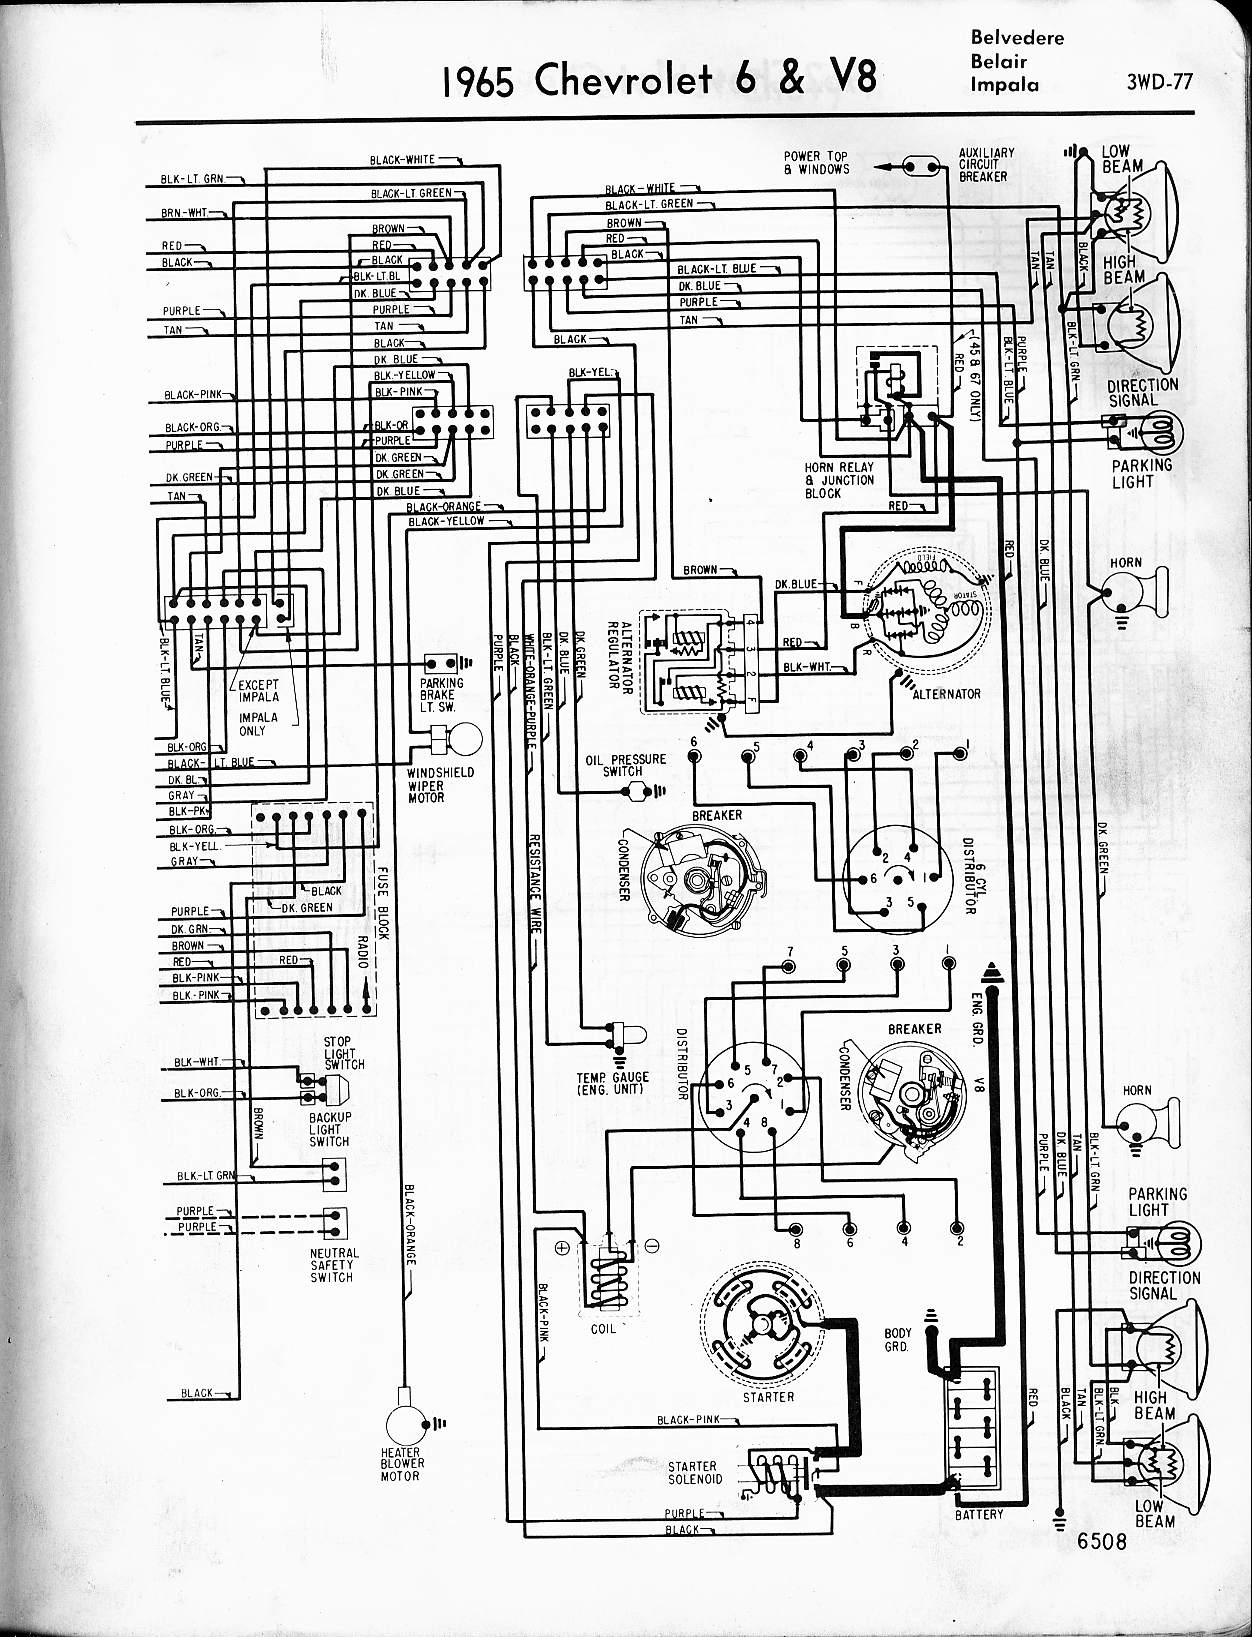 MWireChev65_3WD 077 chevy diagrams gm turn signal wiring diagram at crackthecode.co